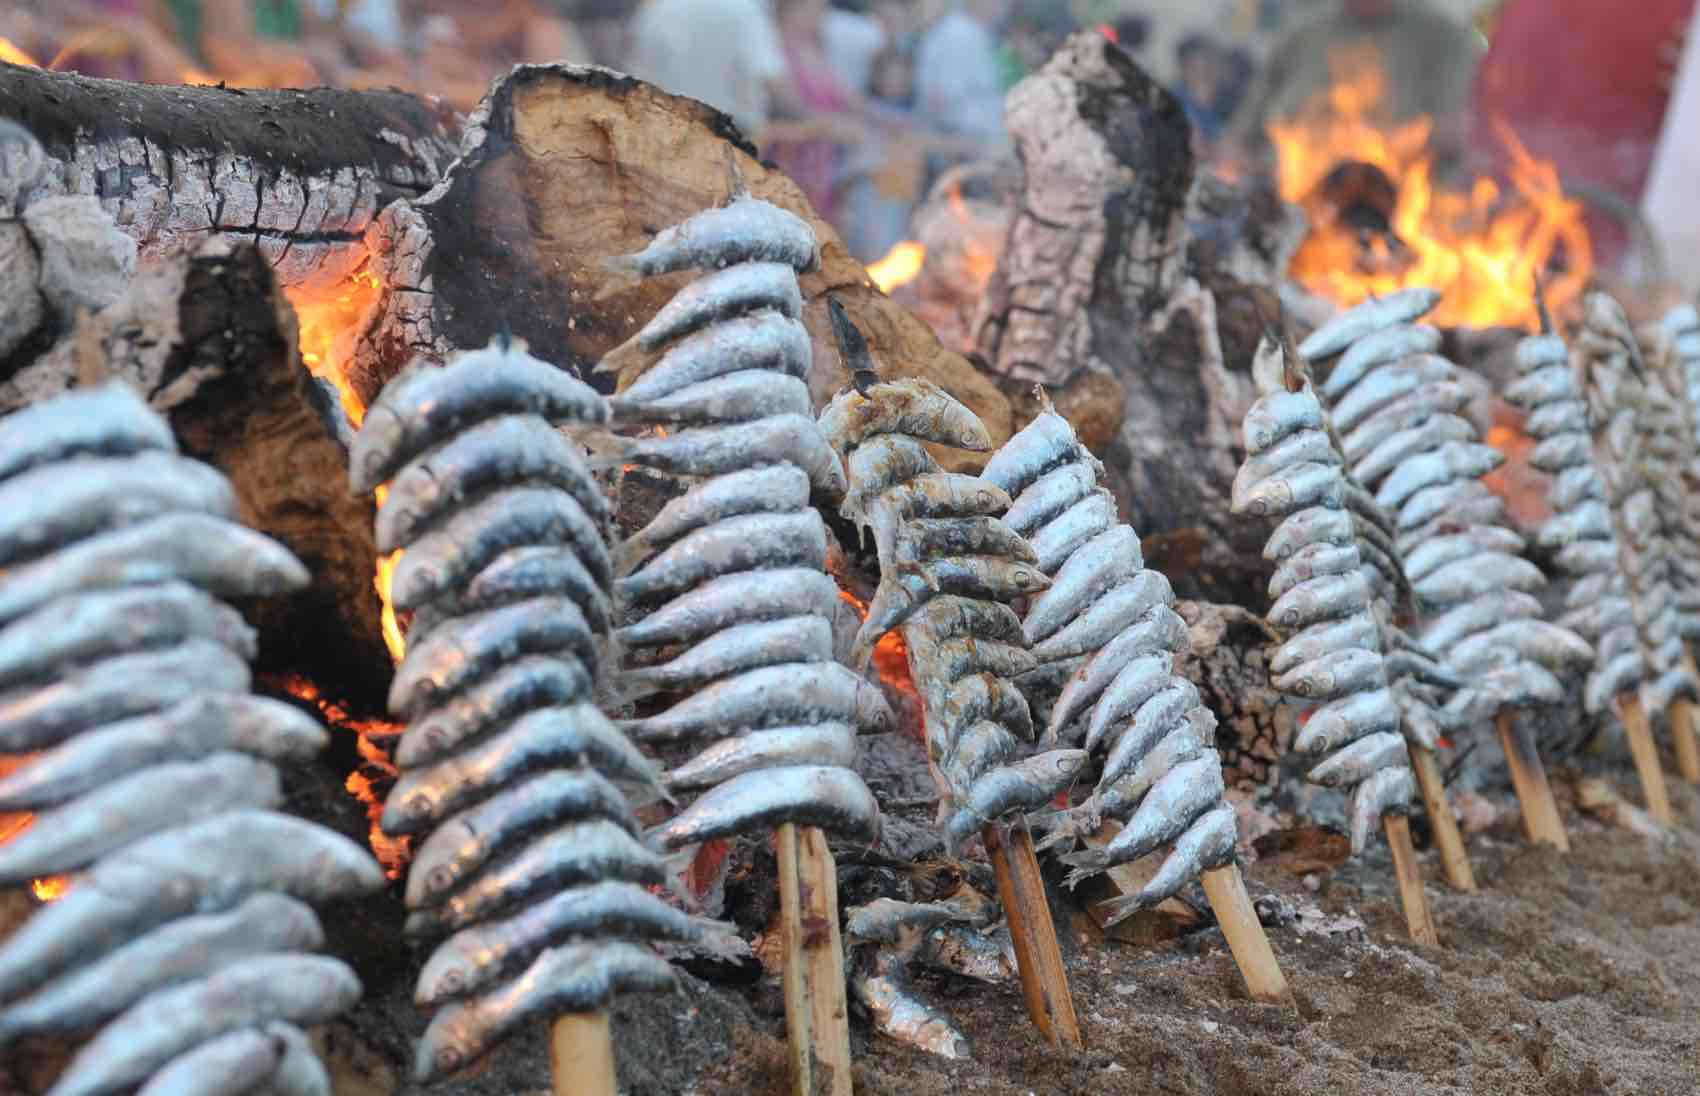 Espetos de sardinas: Sardines on a stick - roasting outdoor on the beach